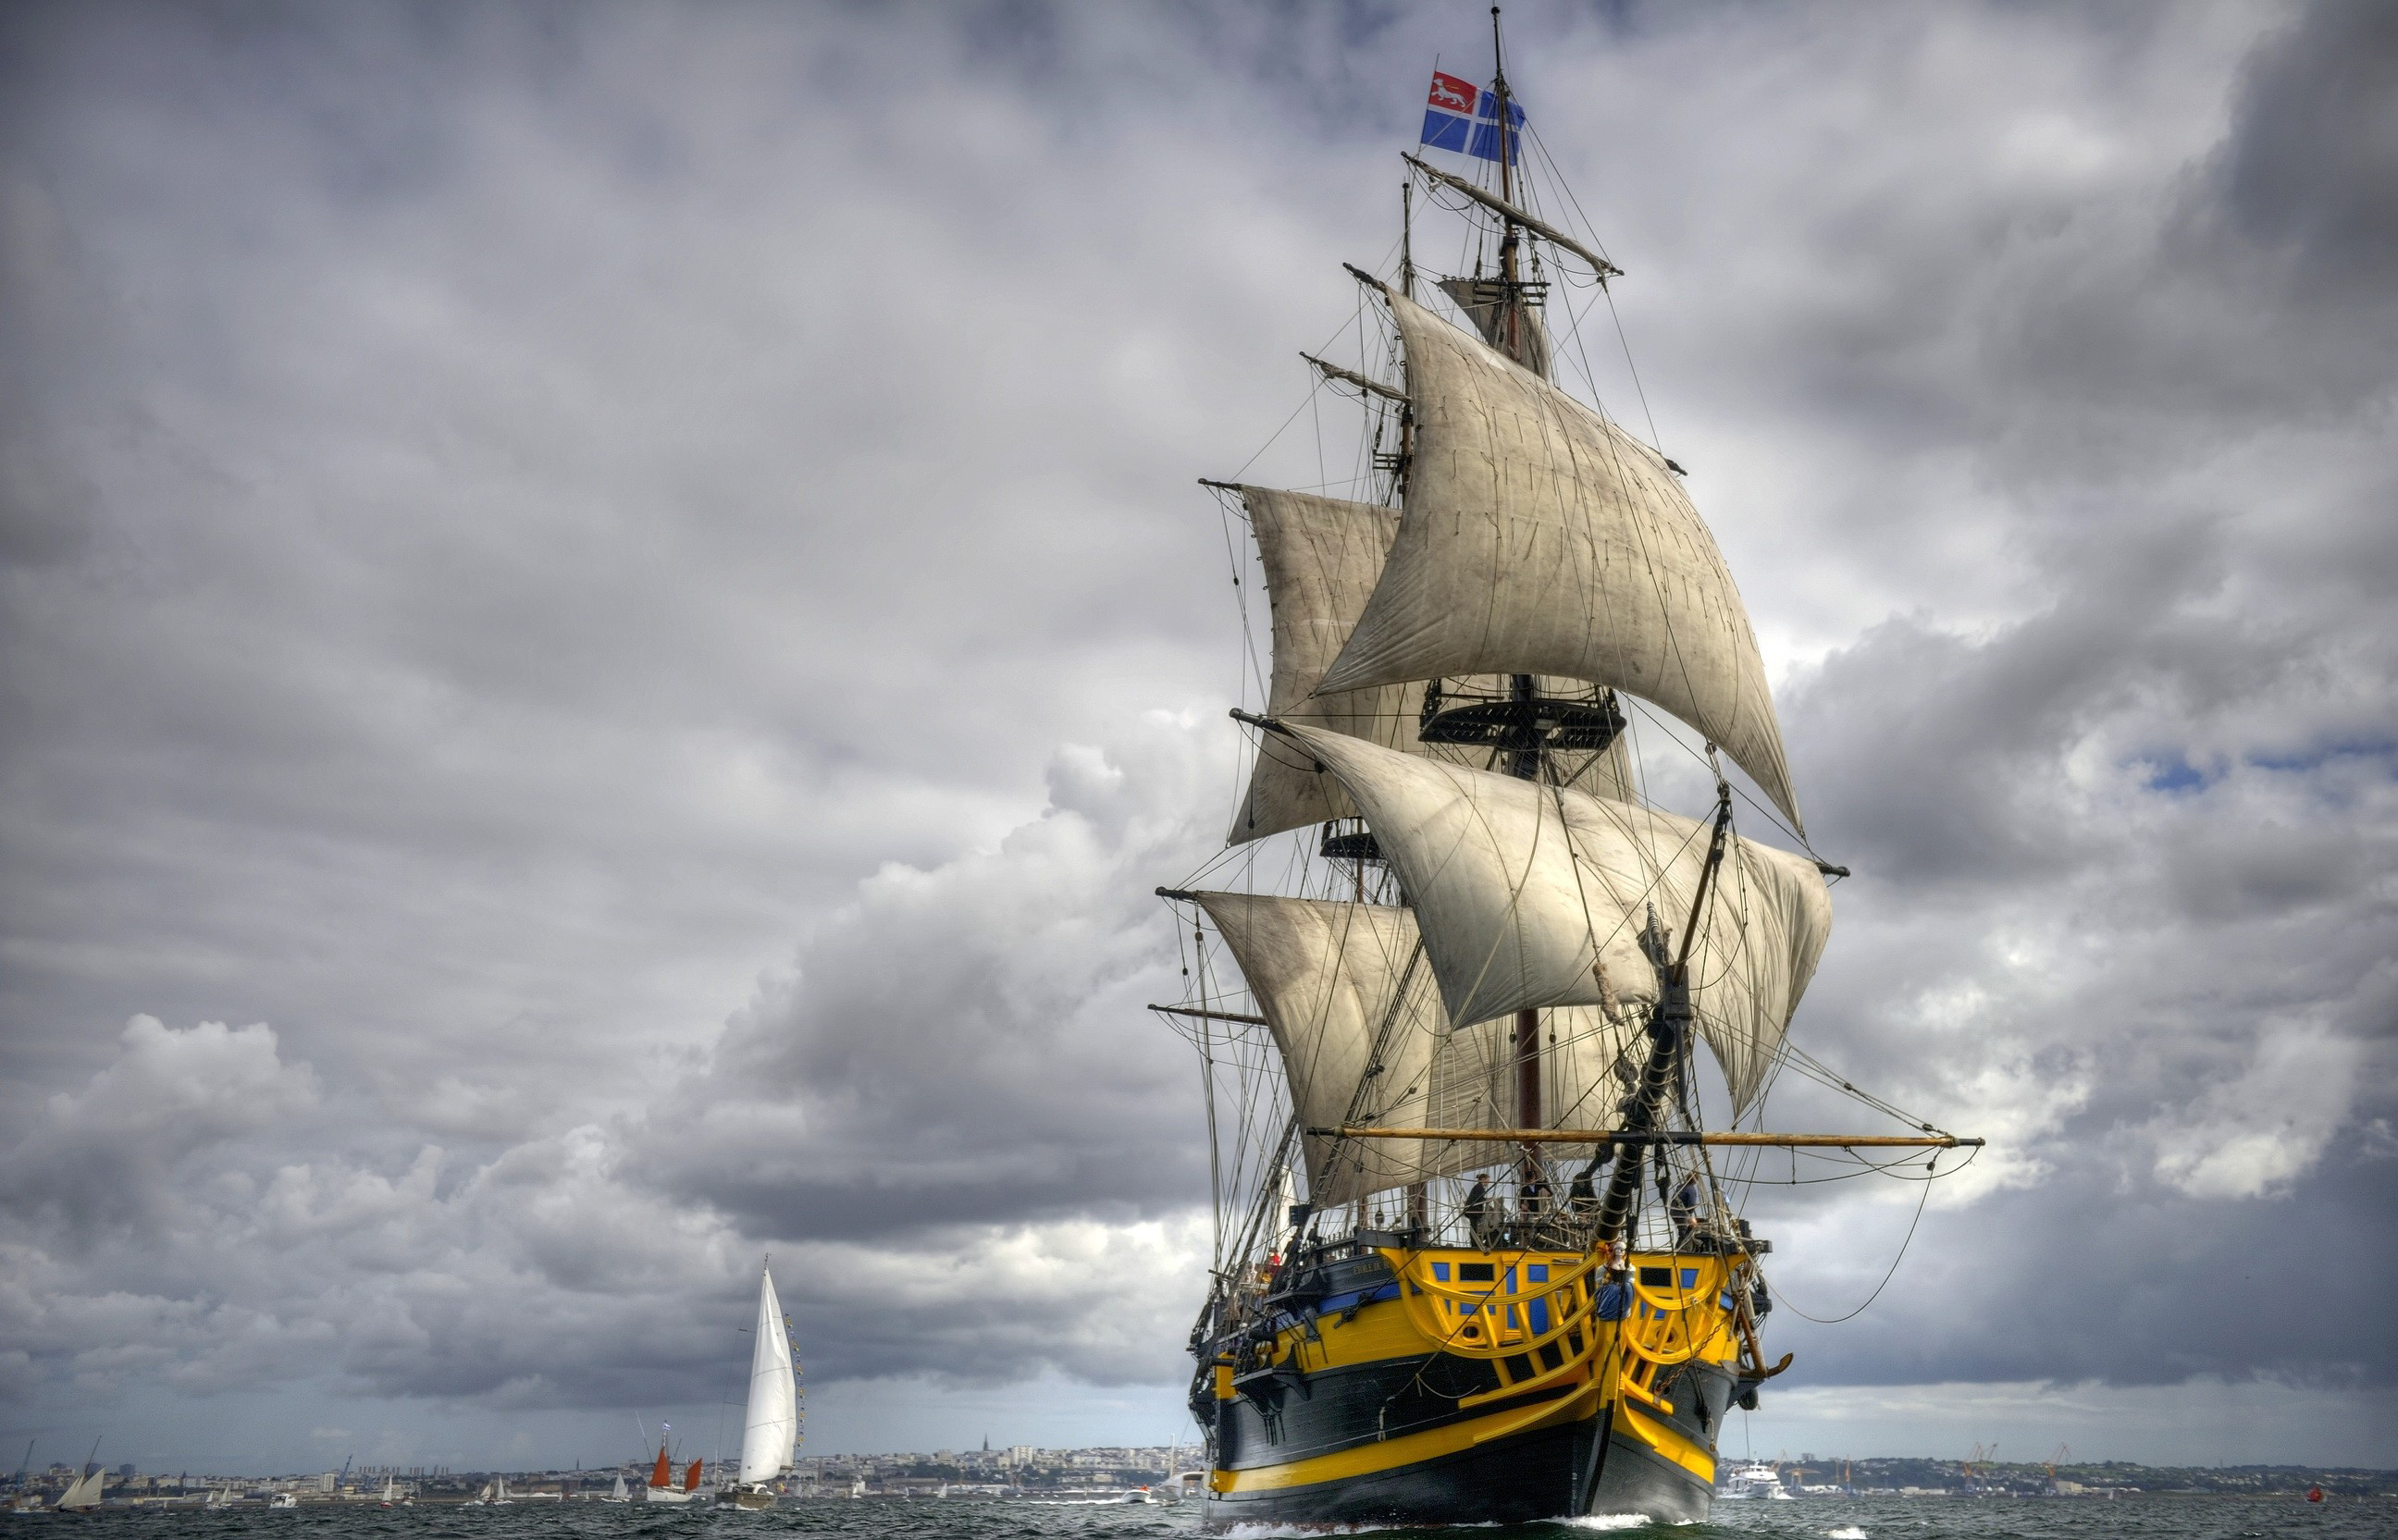 Ship Wallpaper Images in HD Available Here For Download 2592x1665